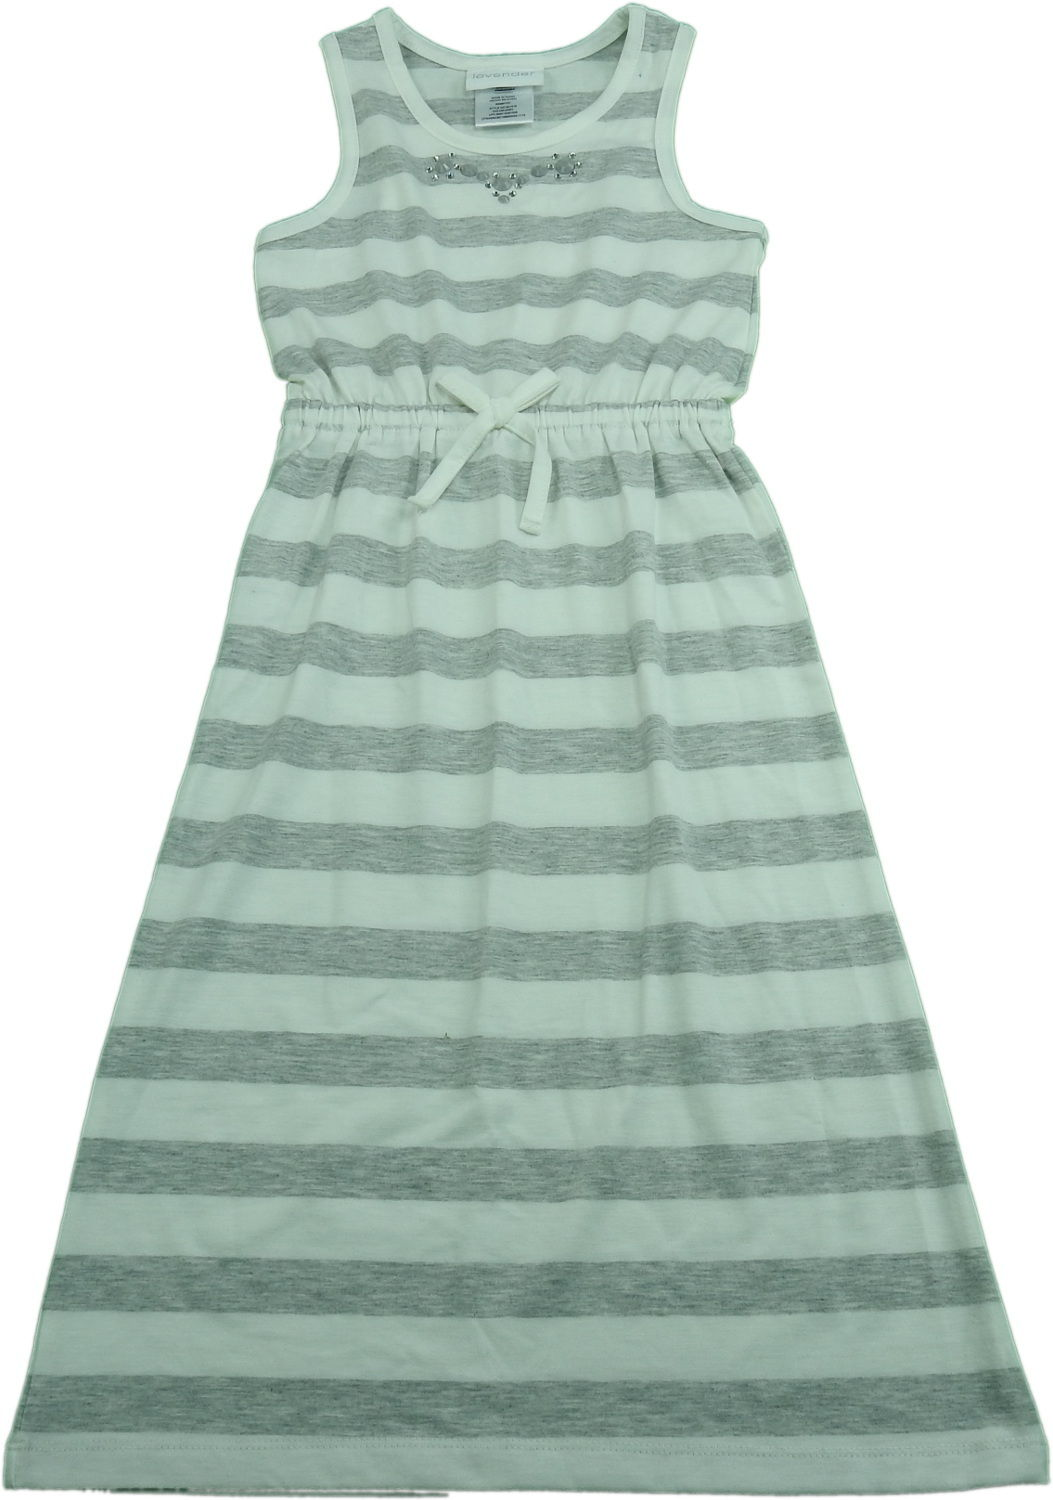 Lavender By Us Angels Girls Size 4/5 Sleeveless Striped Dress, Grey/White Stripe